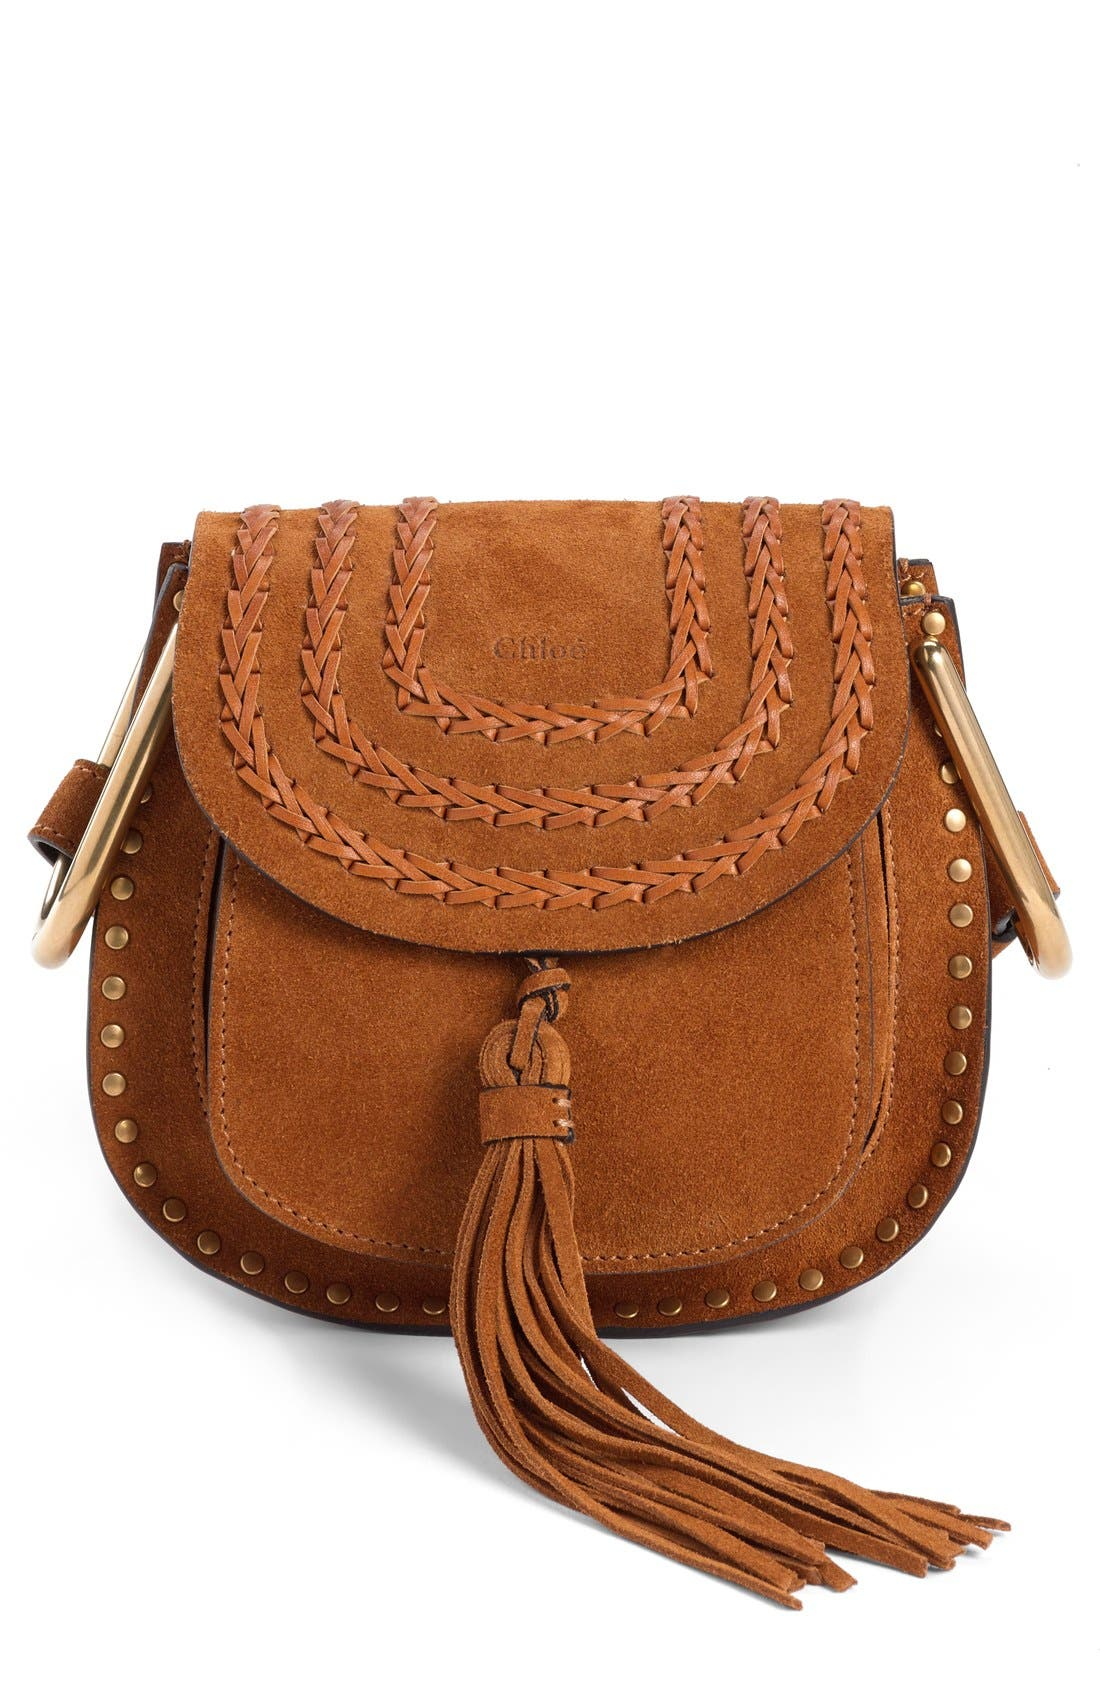 Main Image - Chloé 'Mini Hudson' Crossbody Bag